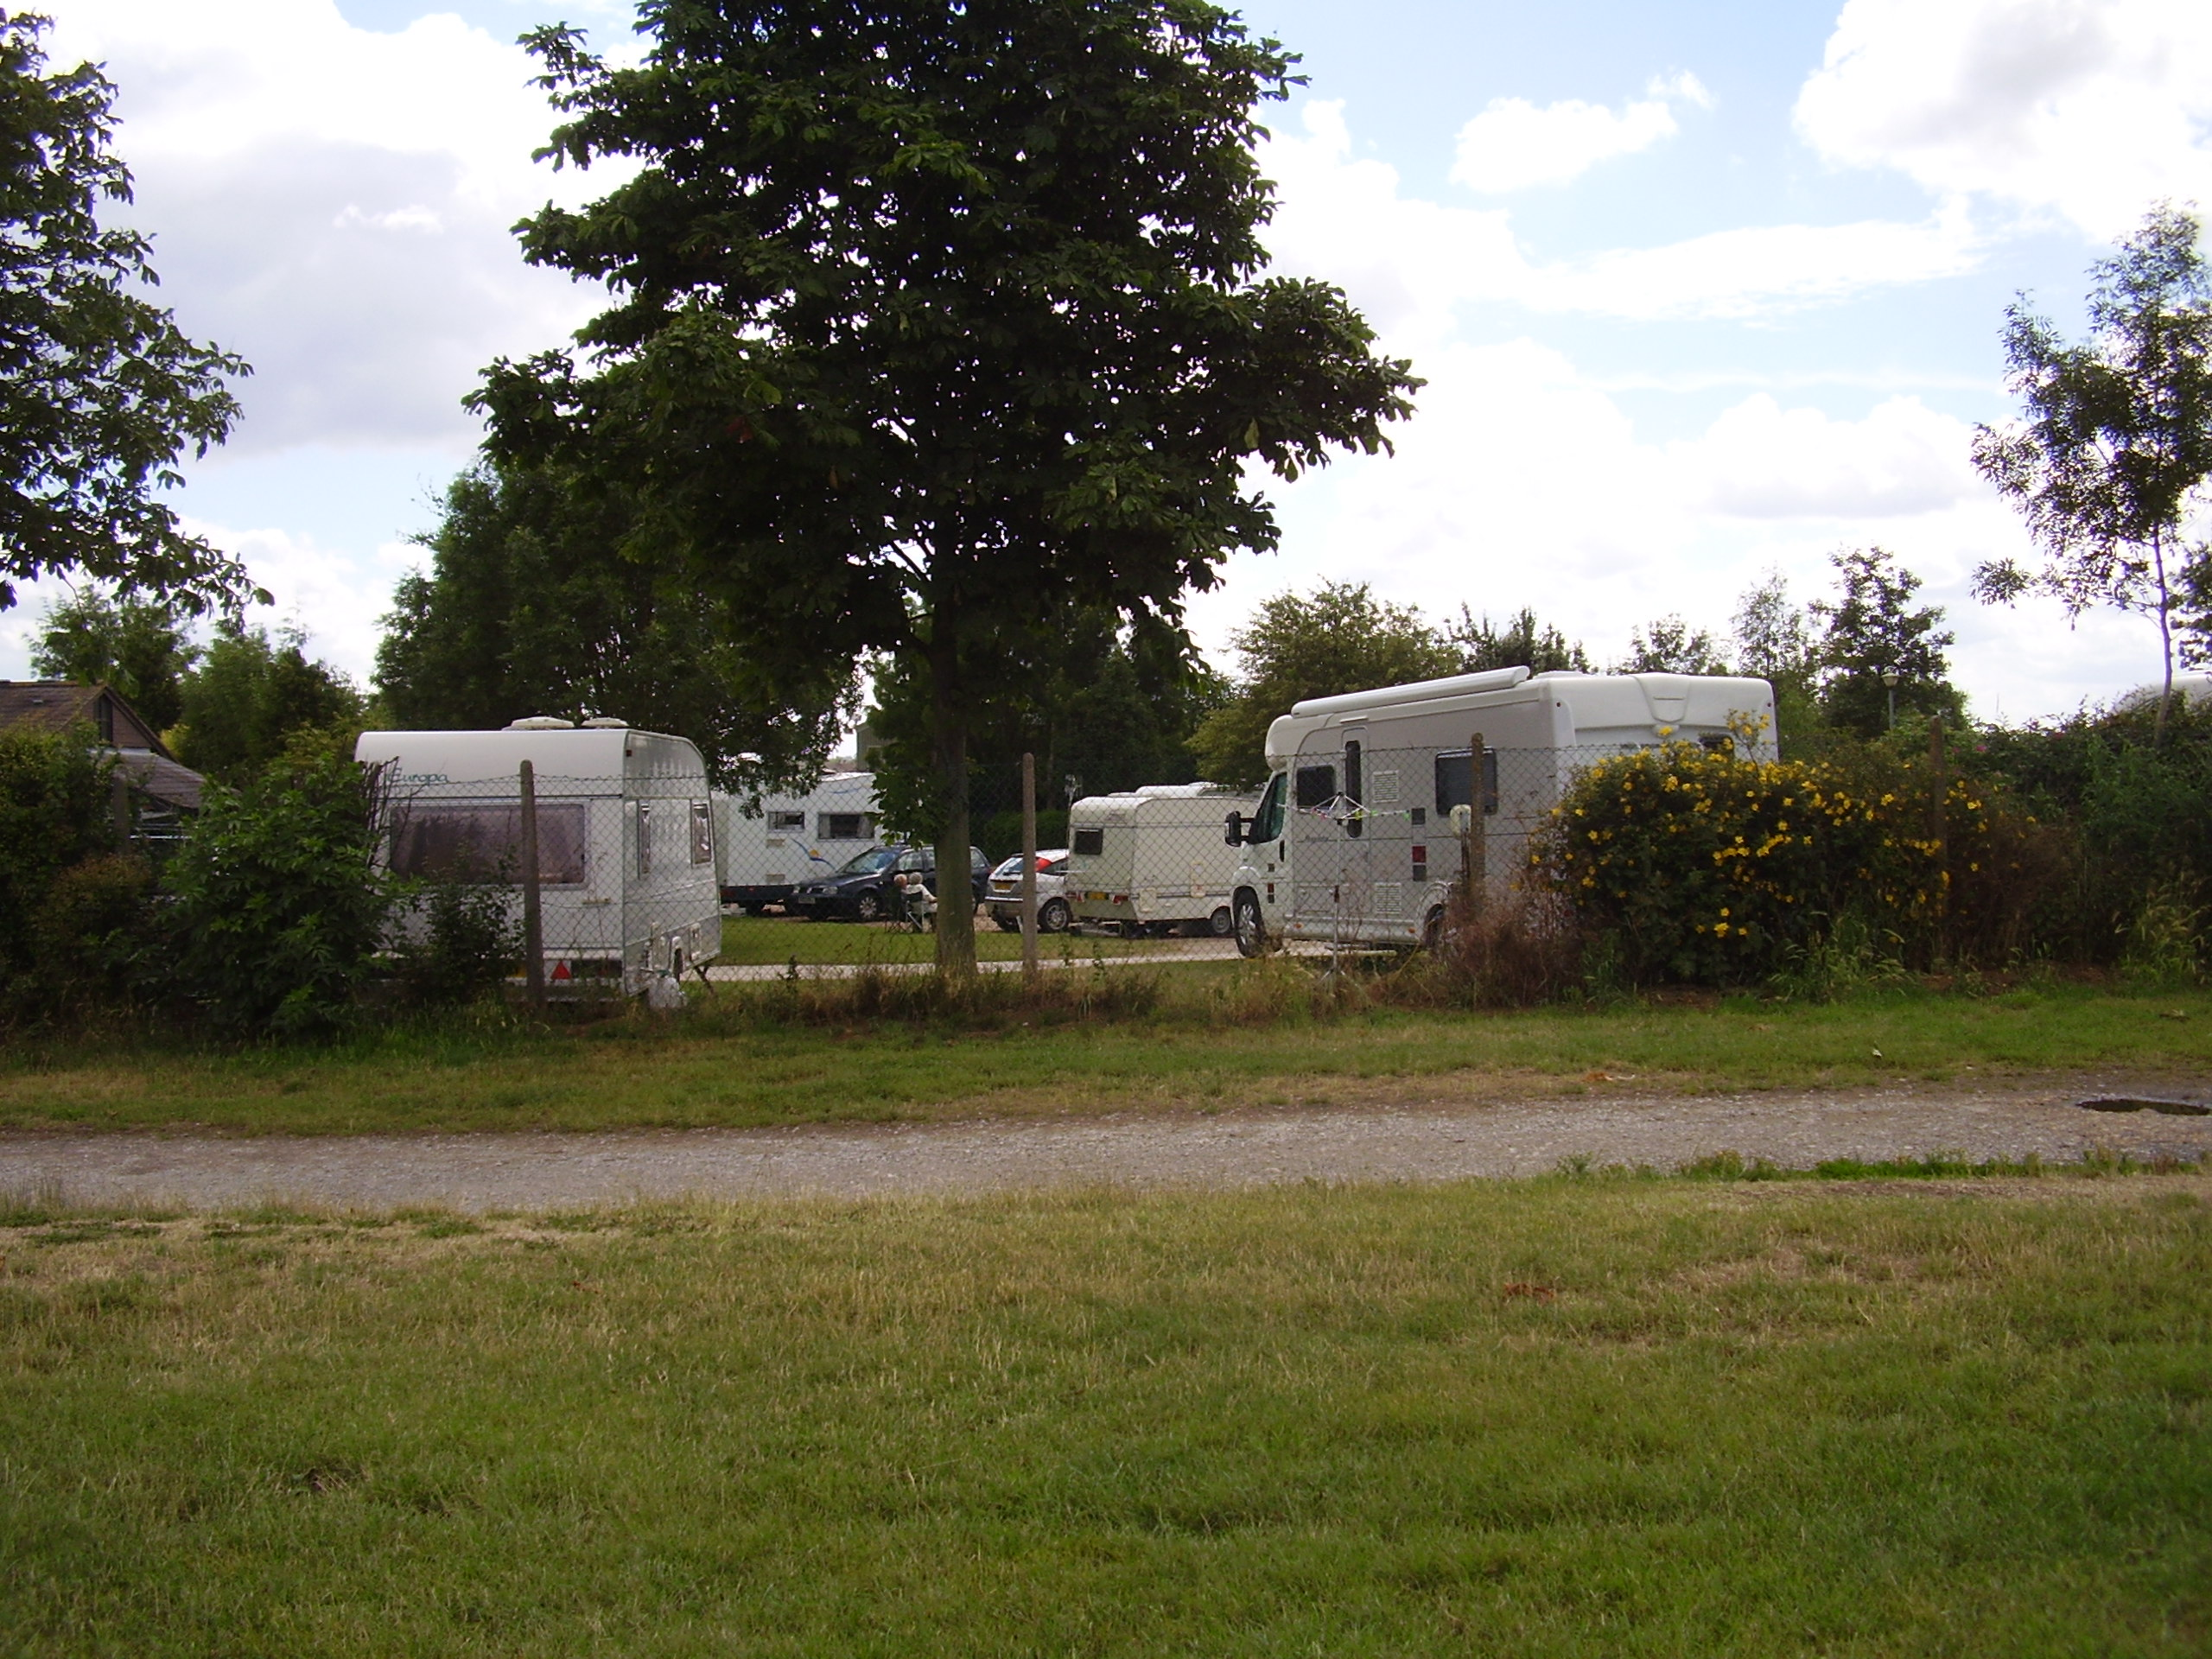 Warwick Racecourse dog walk and caravan site